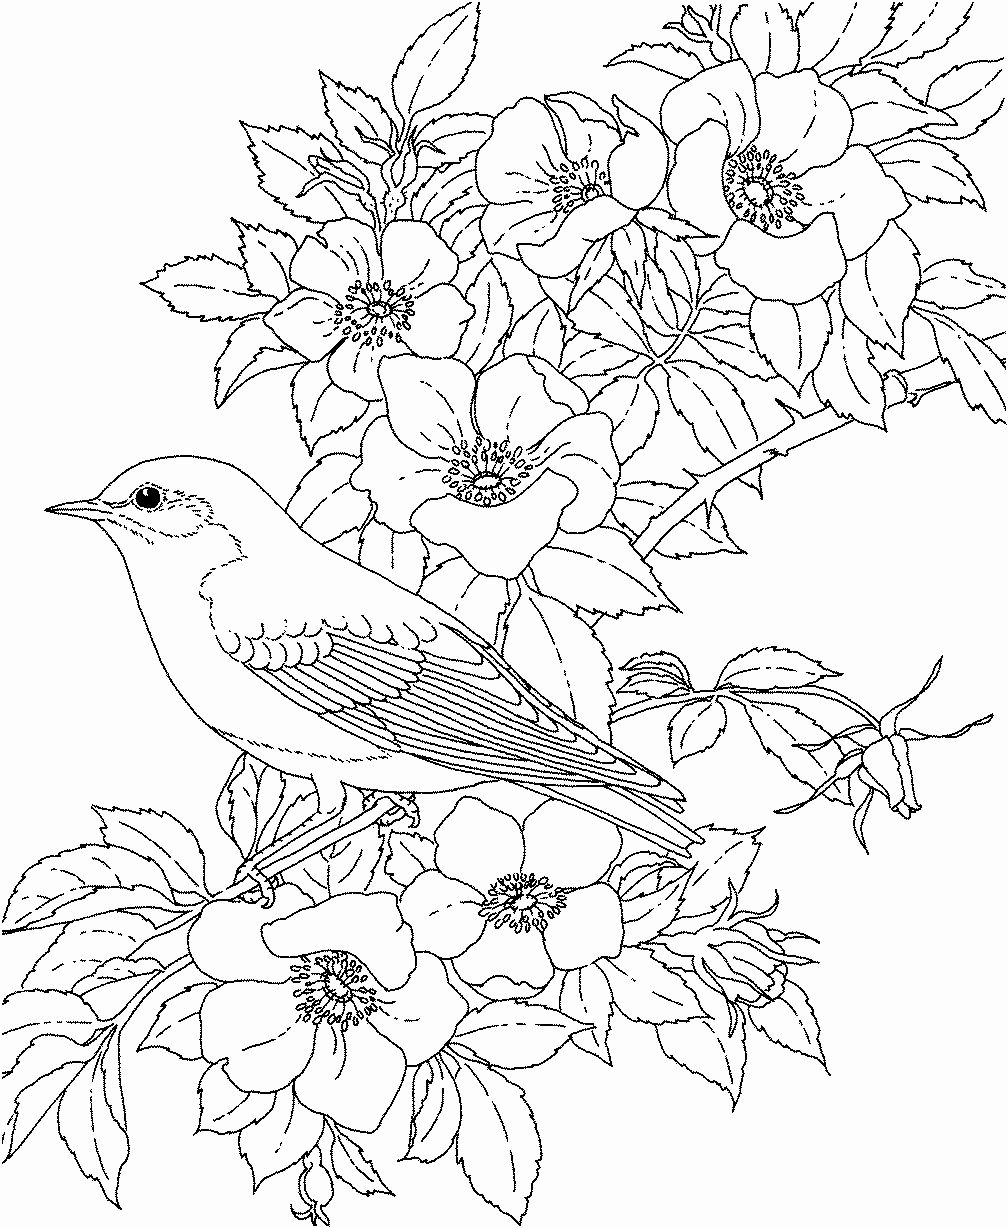 Cute Coloring Pages Of Animals Beautiful Coloring Pages Birds And Flowers Bird Coloring Pages Spring Coloring Pages Flower Coloring Pages